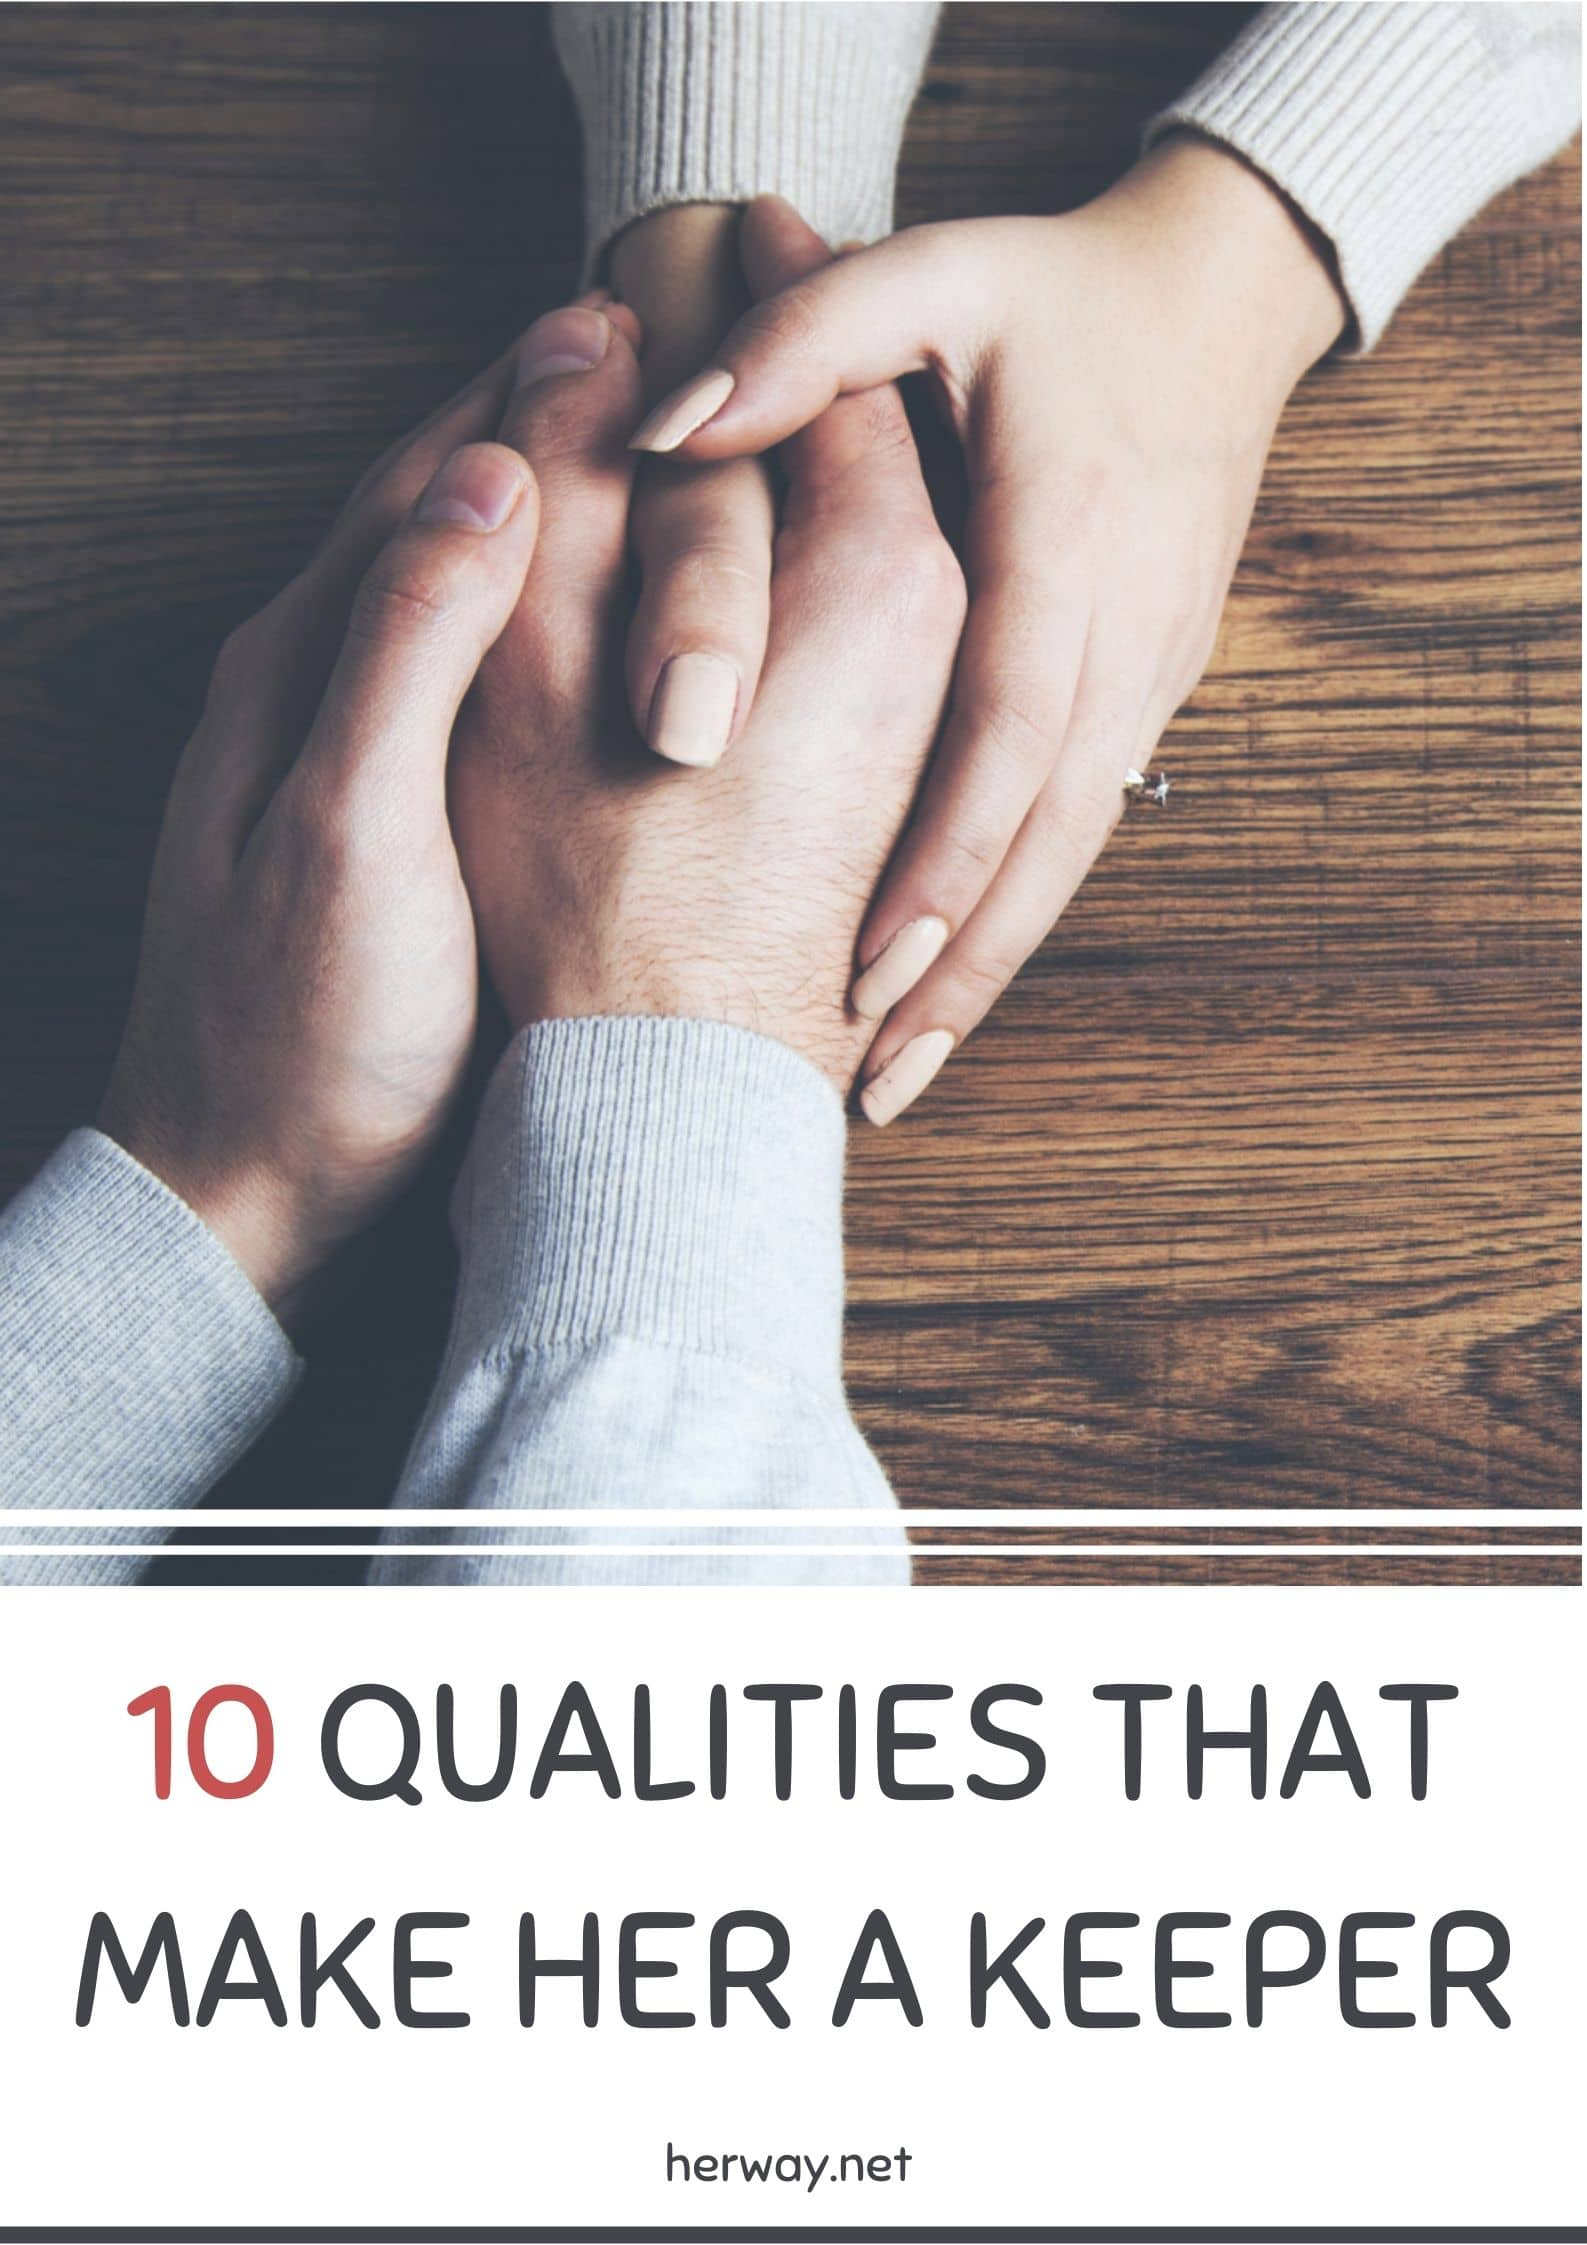 10 Qualities that Make Her a Keeper